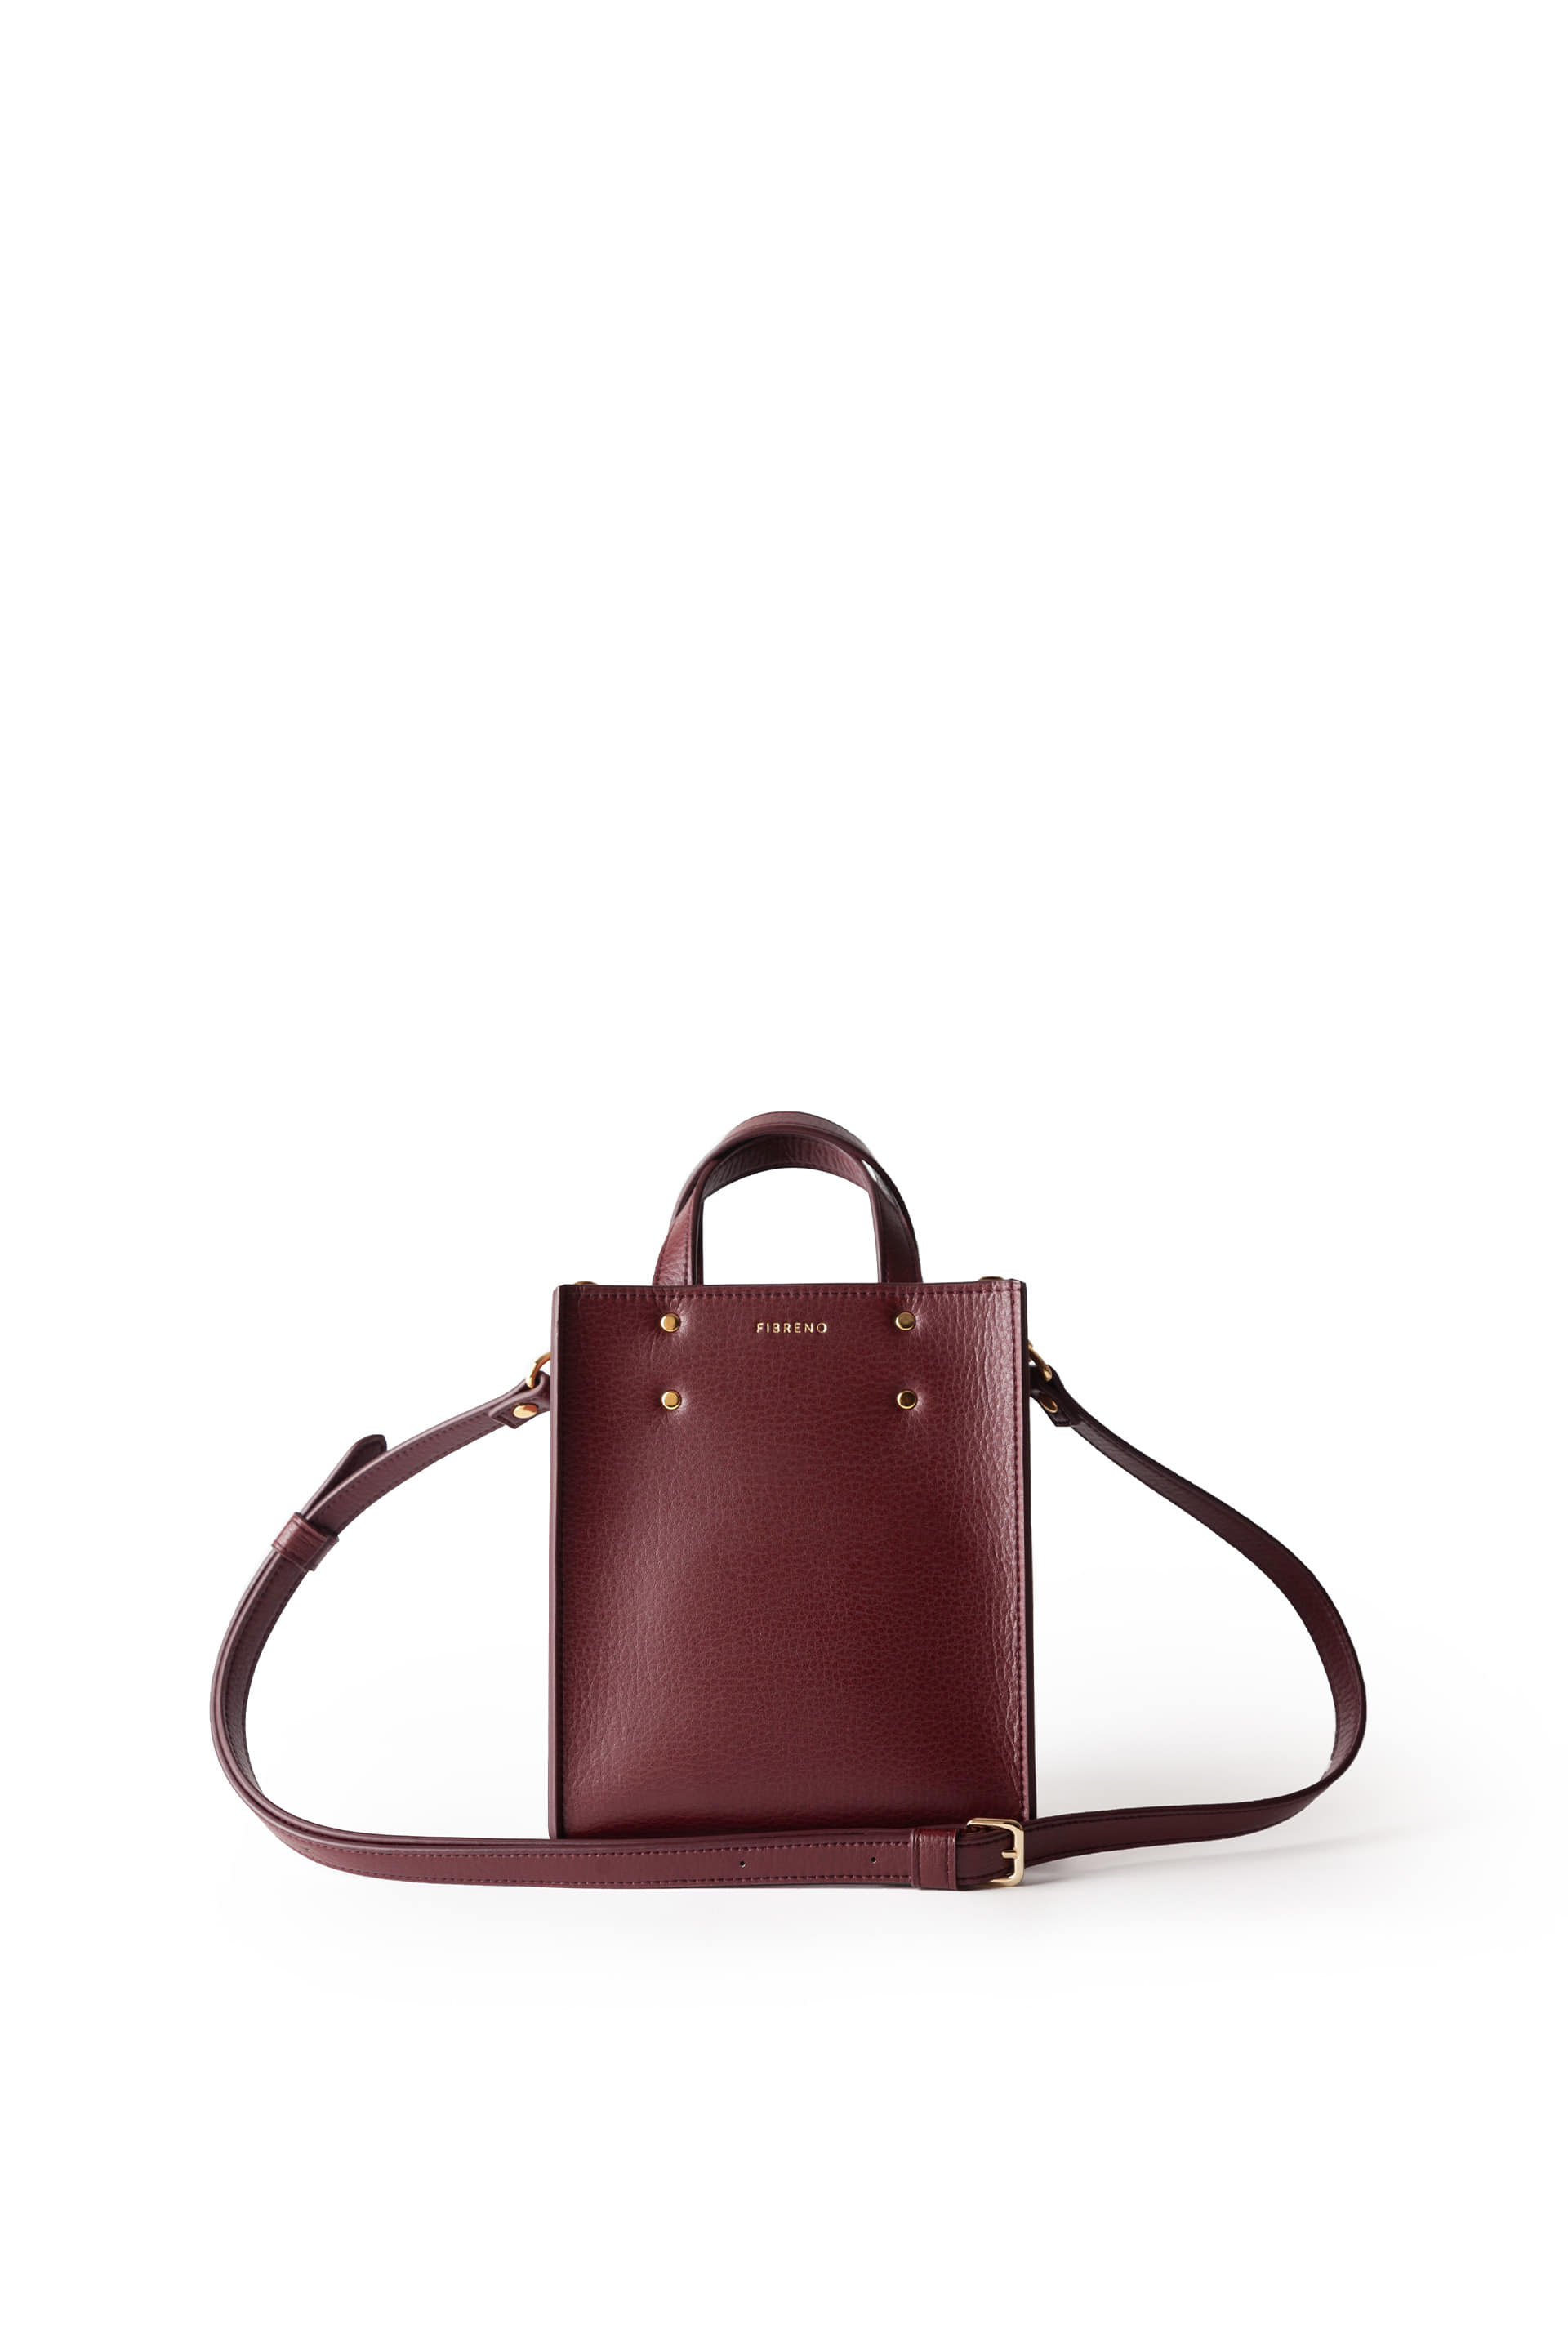 BABY MINI BAG 17 Vino Wine 149,000 > 129,000